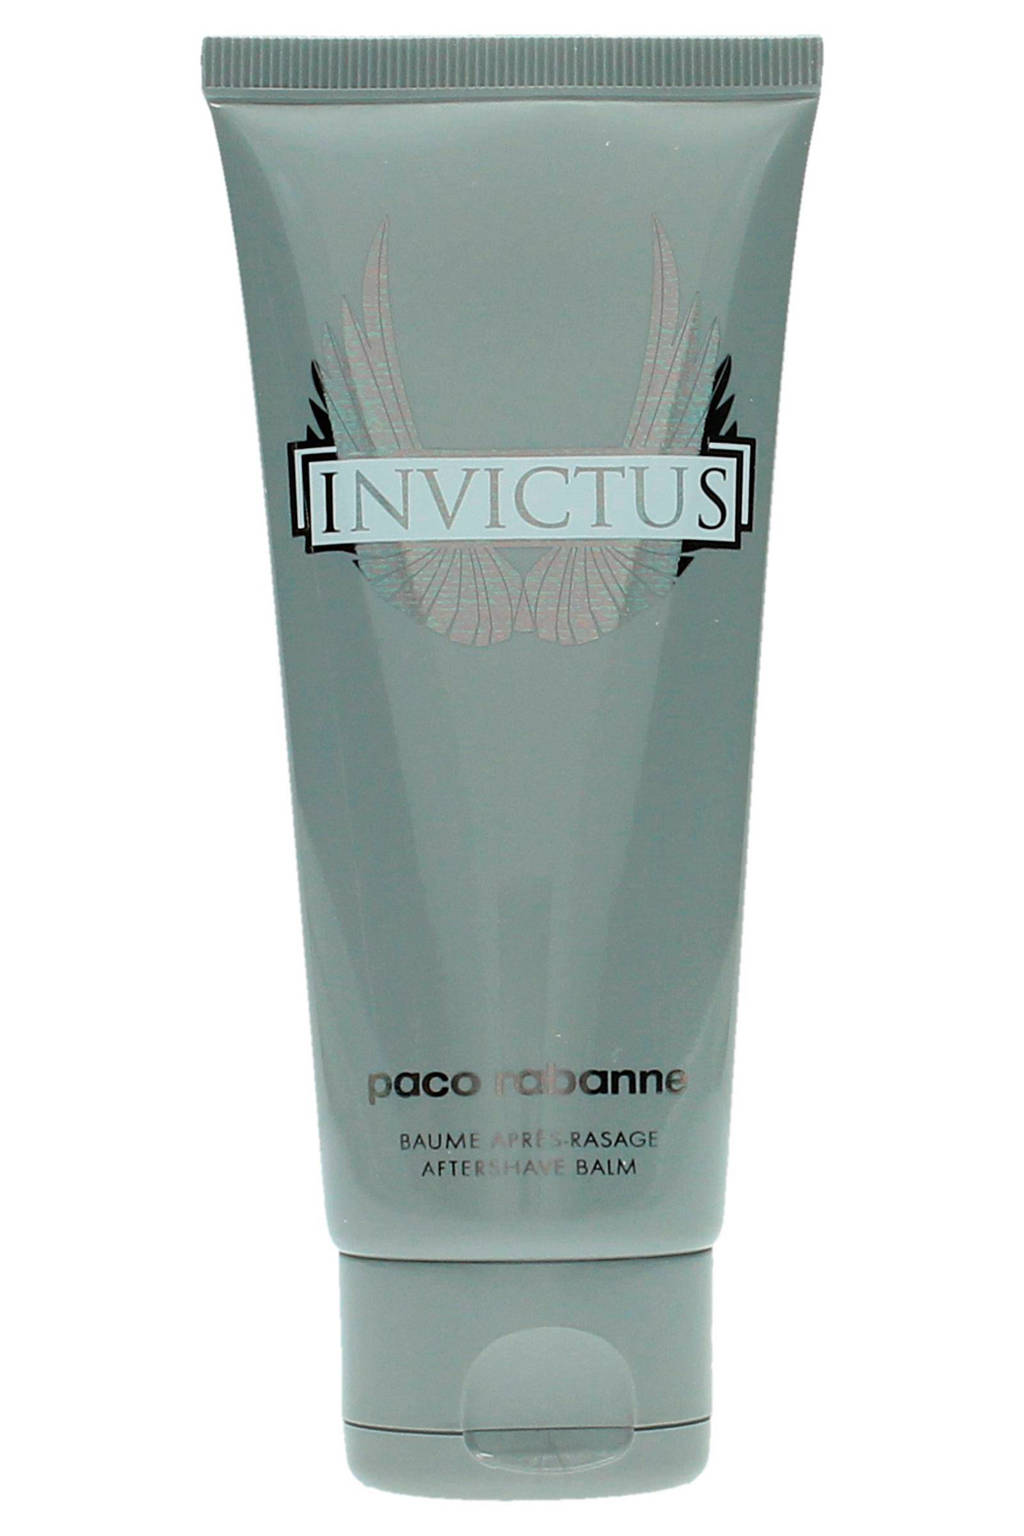 Paco Rabanne Invictus aftershave balm - 100 ml